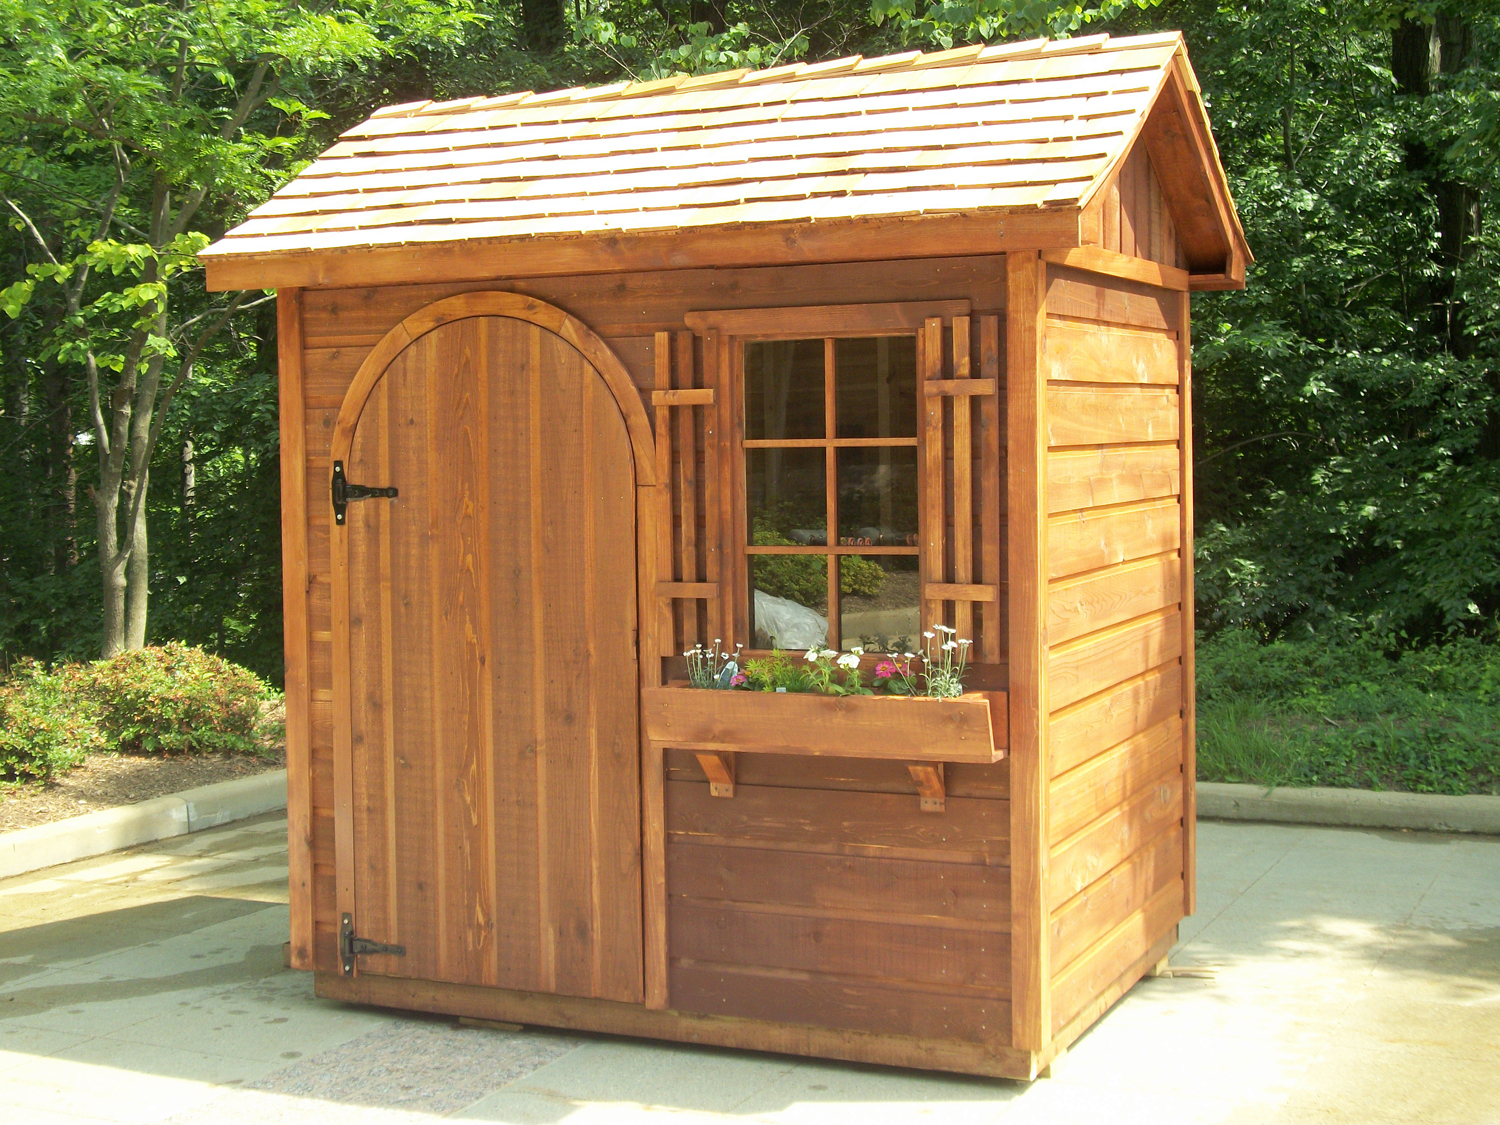 Diy garden shed design quick woodworking projects for Garden shed designs